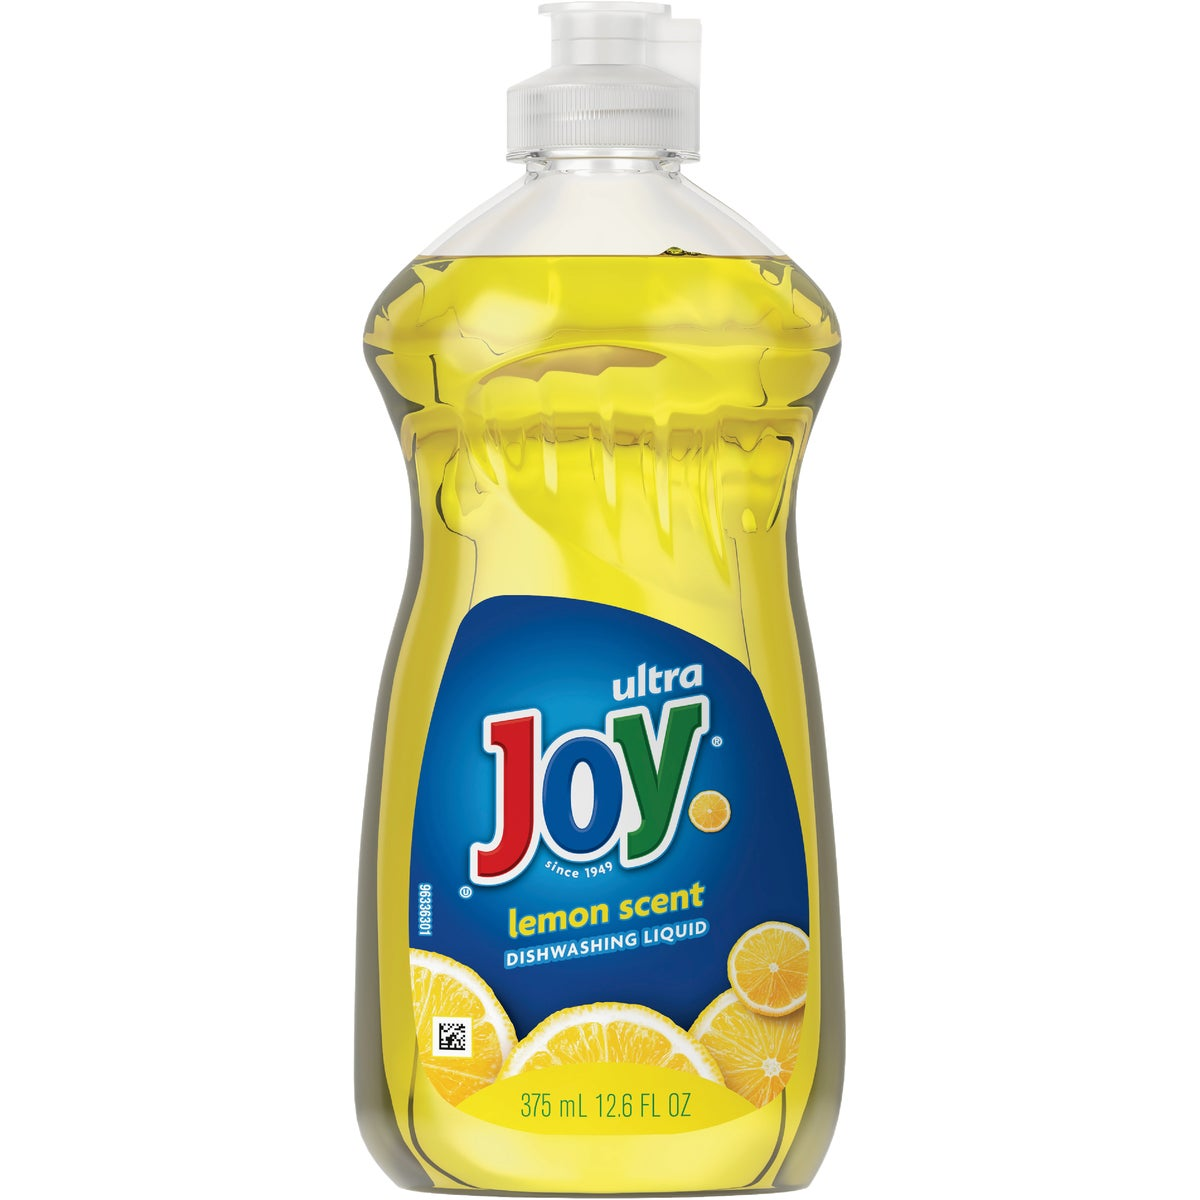 14OZ JOY LIQ DISH SOAP - 21737 by Procter & Gamble